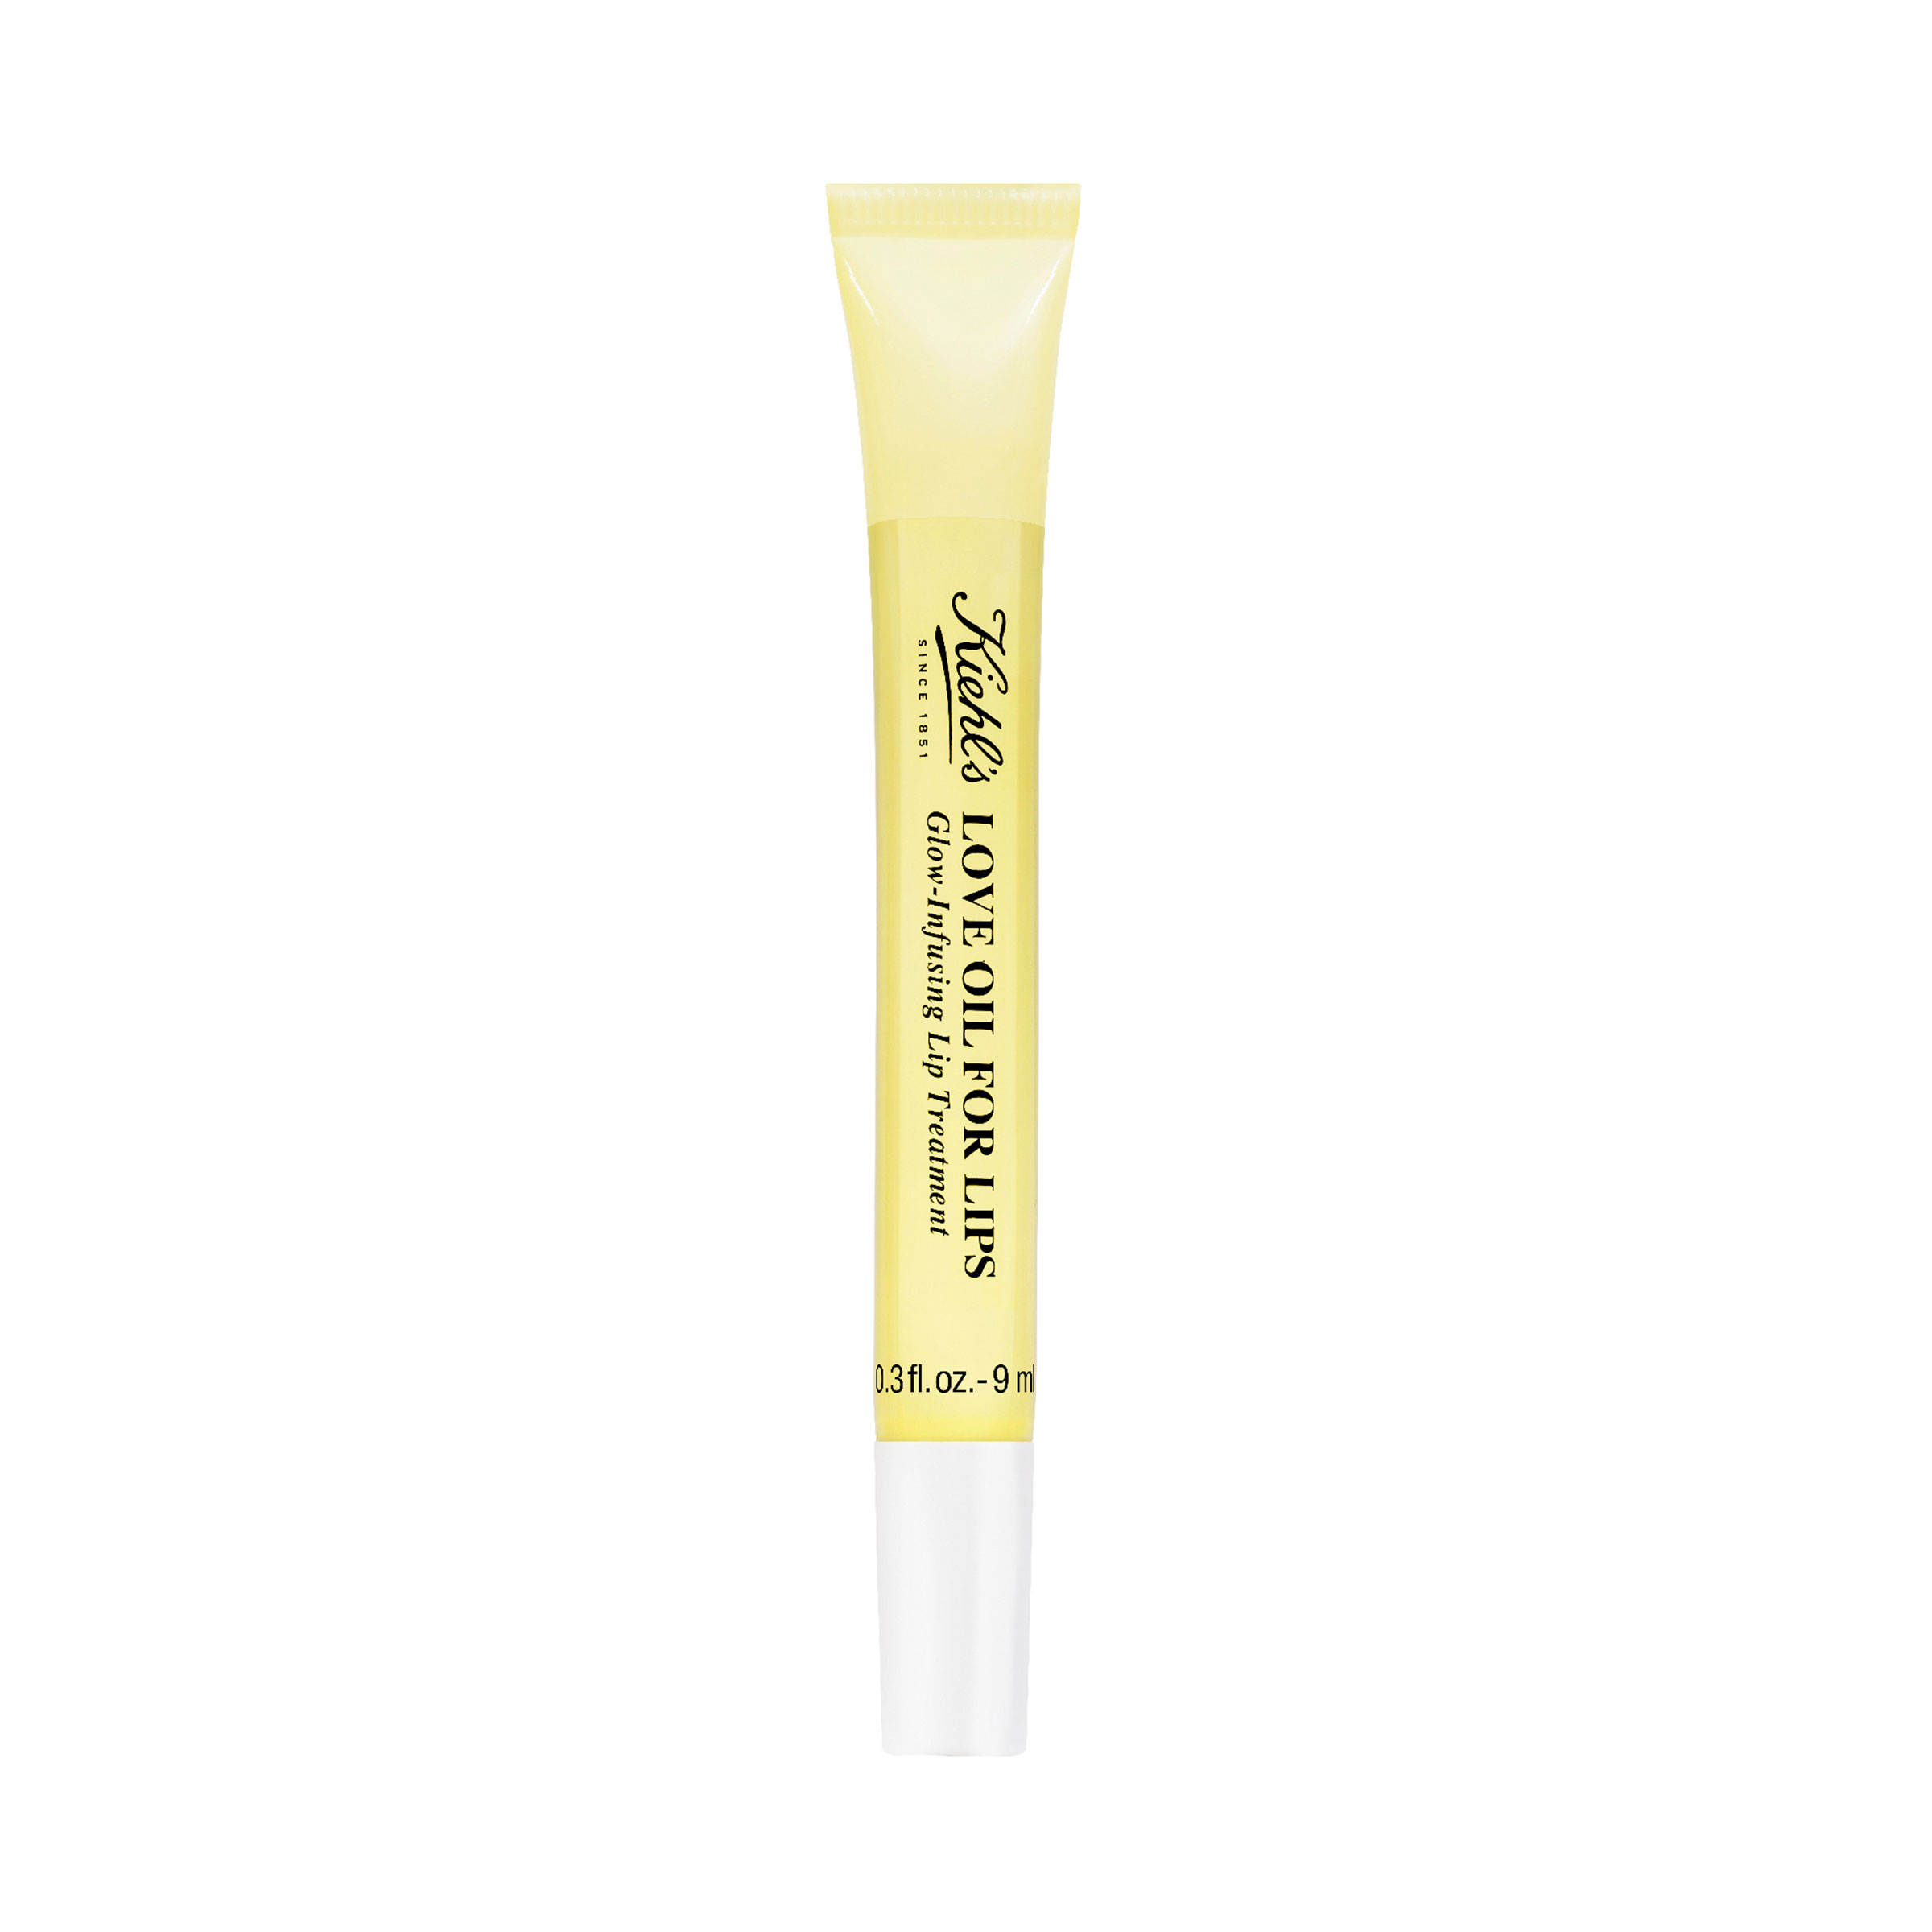 Kiehl's Love Oil for Lips in Untinted